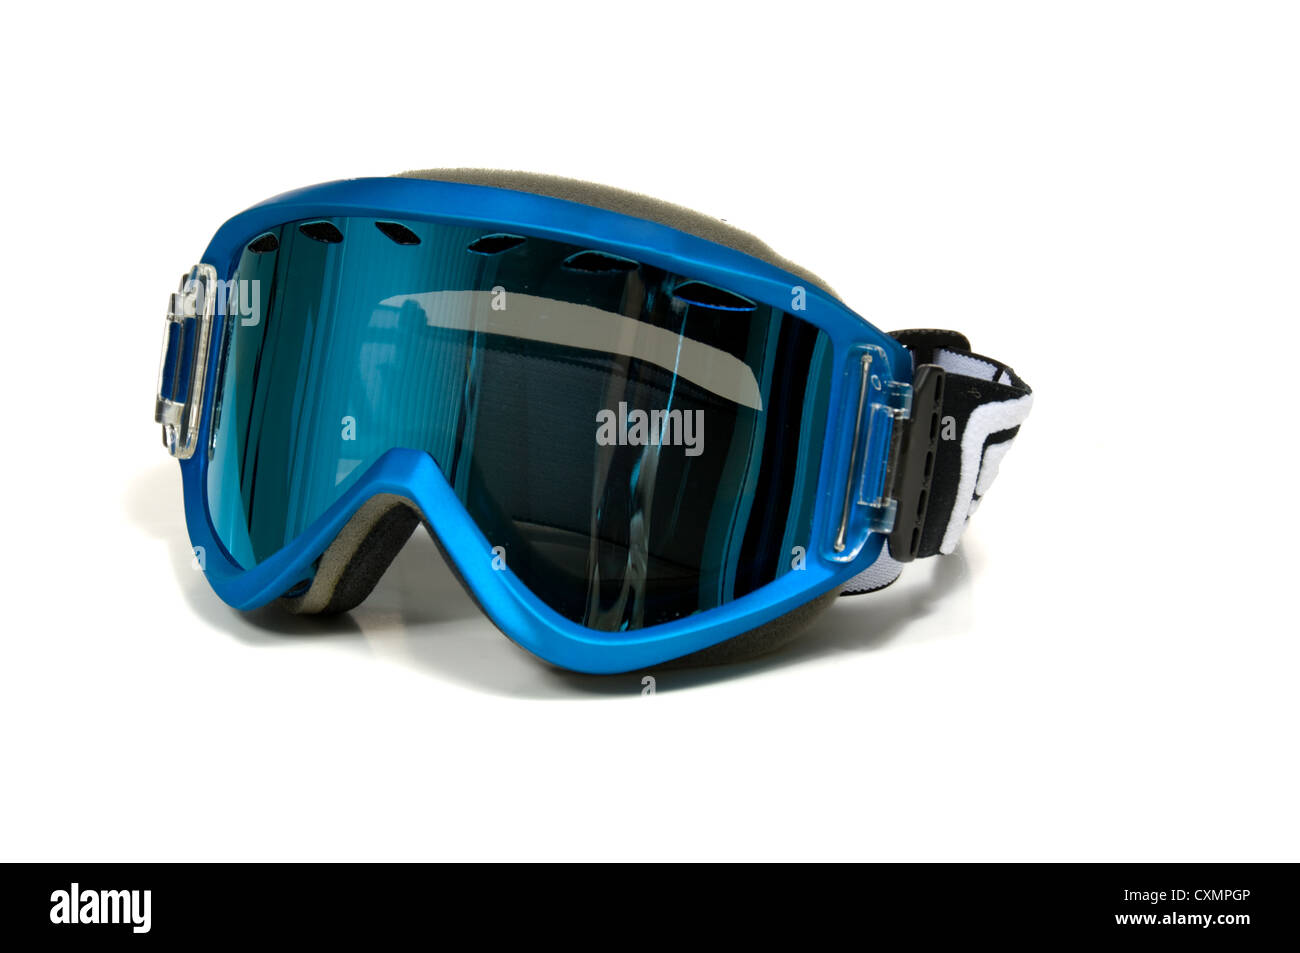 Snow Skiing goggles on white background with blue lenses and a blue frame - Stock Image